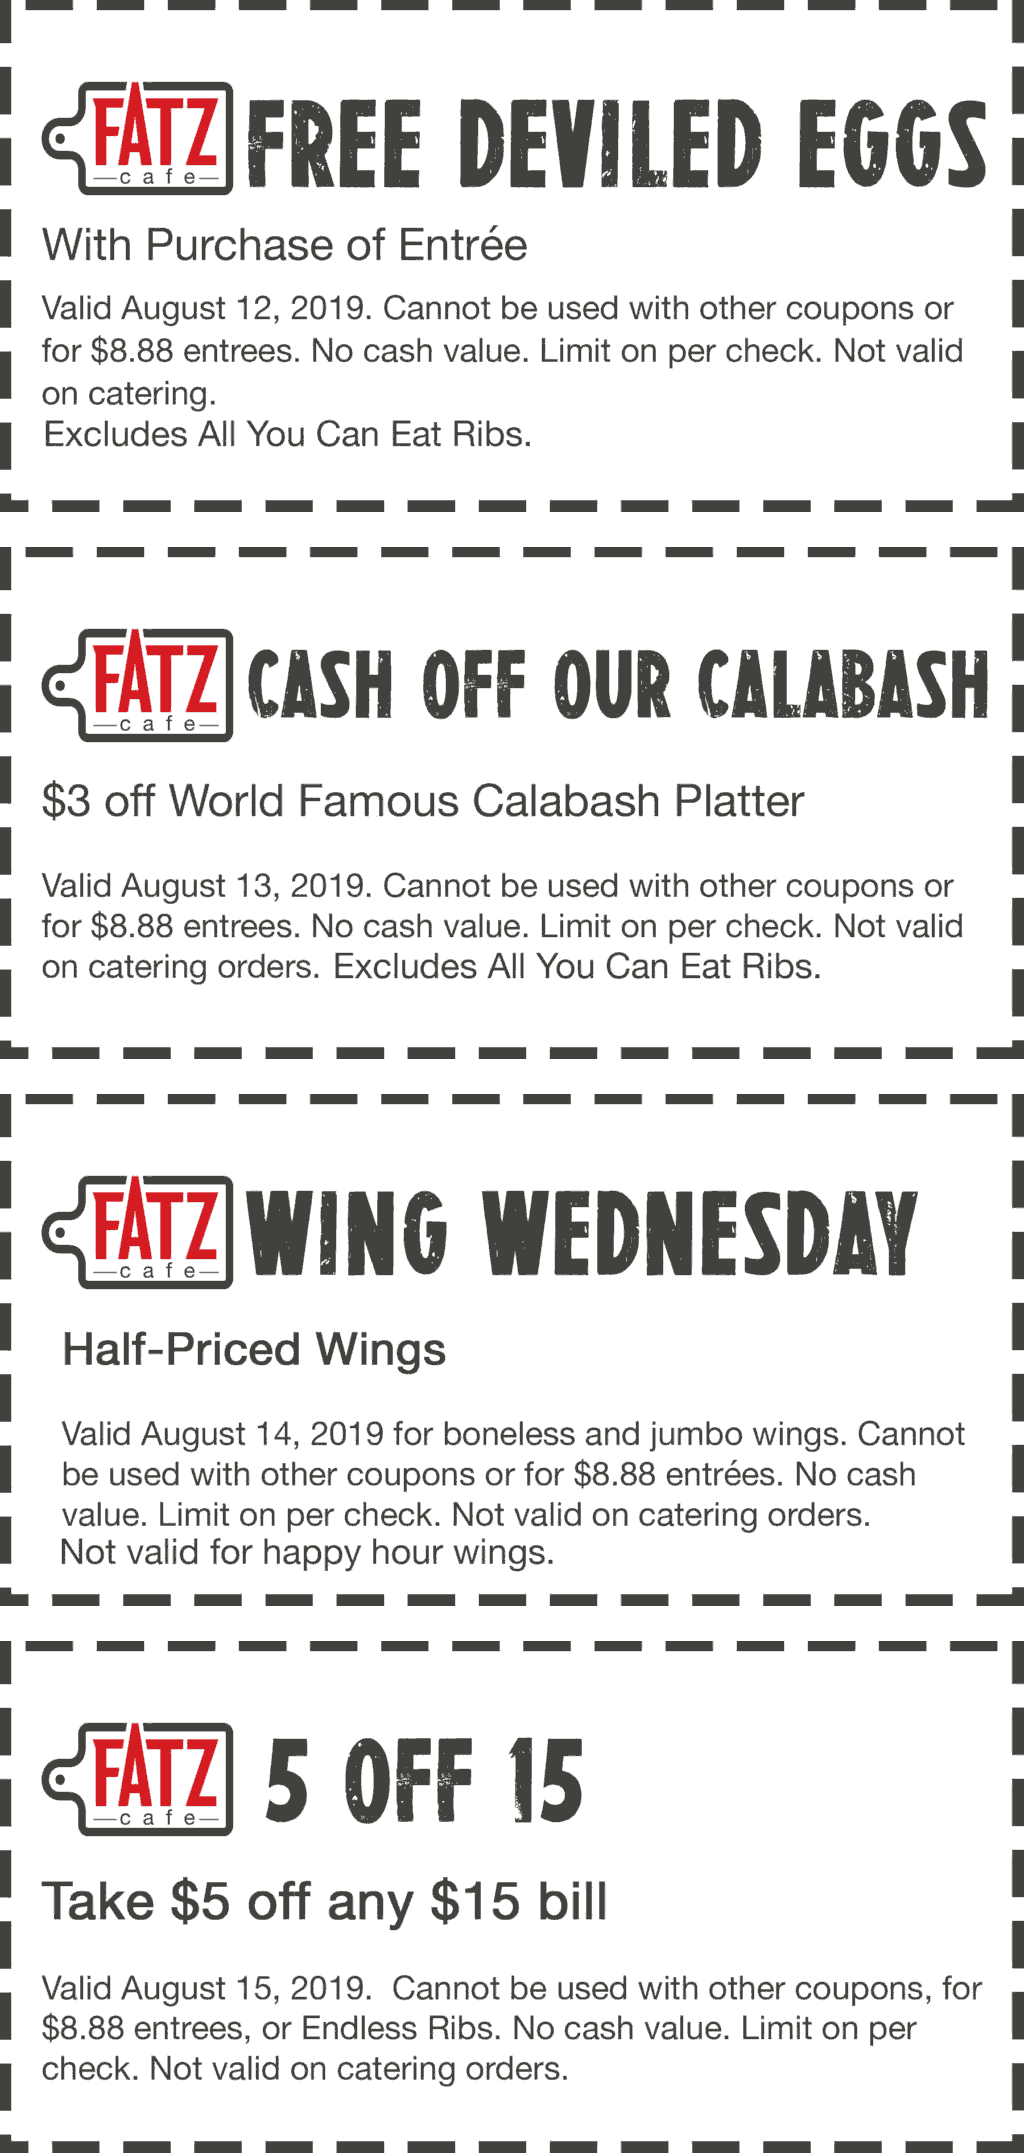 Fatz Cafe coupons & promo code for [June 2020]